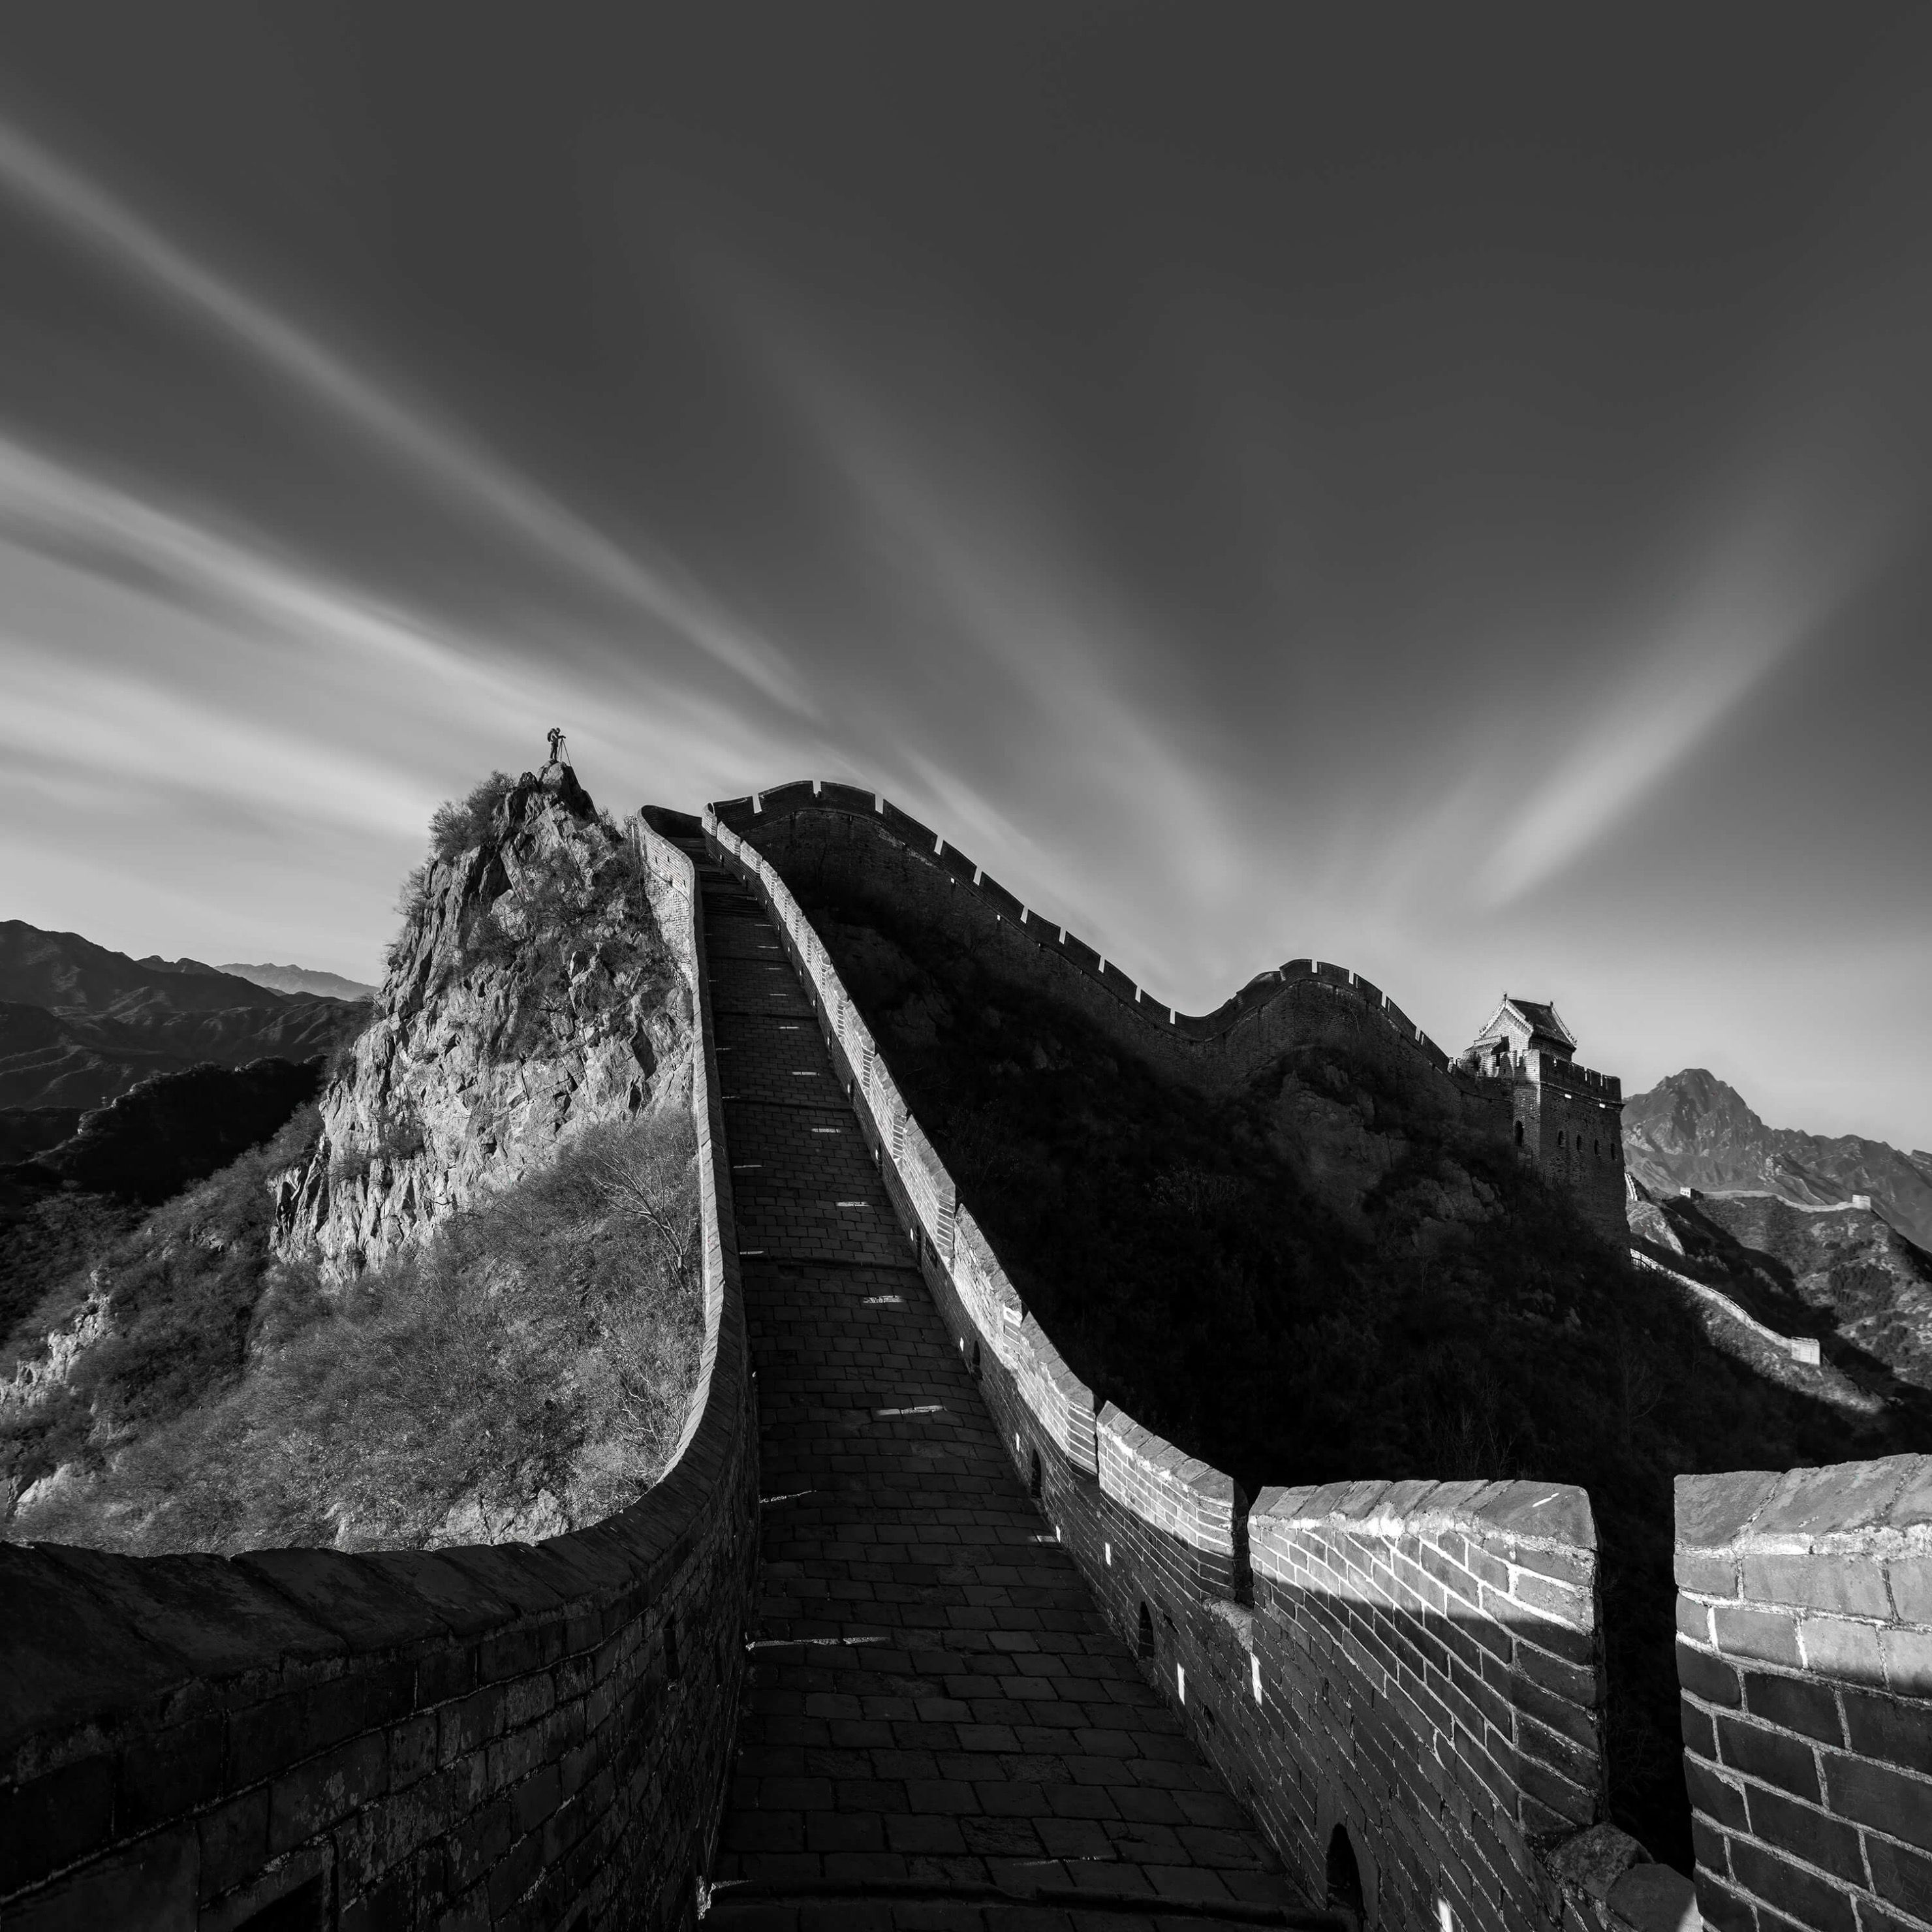 Landscape Photographing the Great Wall